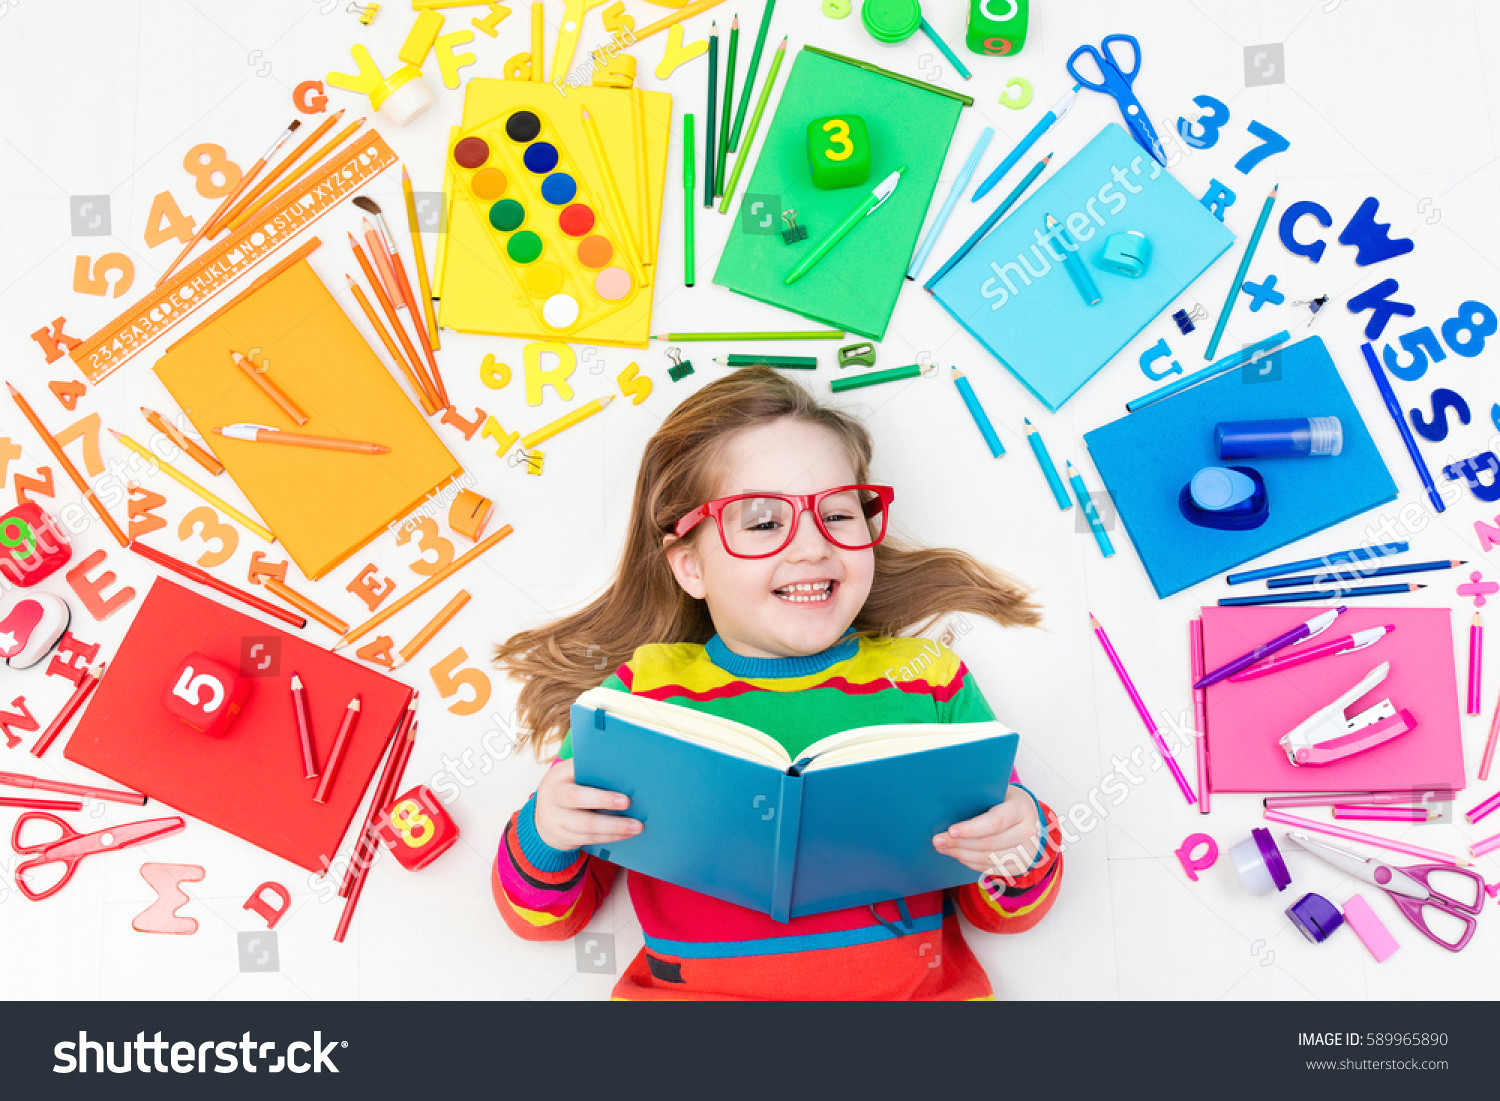 little girl with school supplies books drawing and painting tools and materials happy